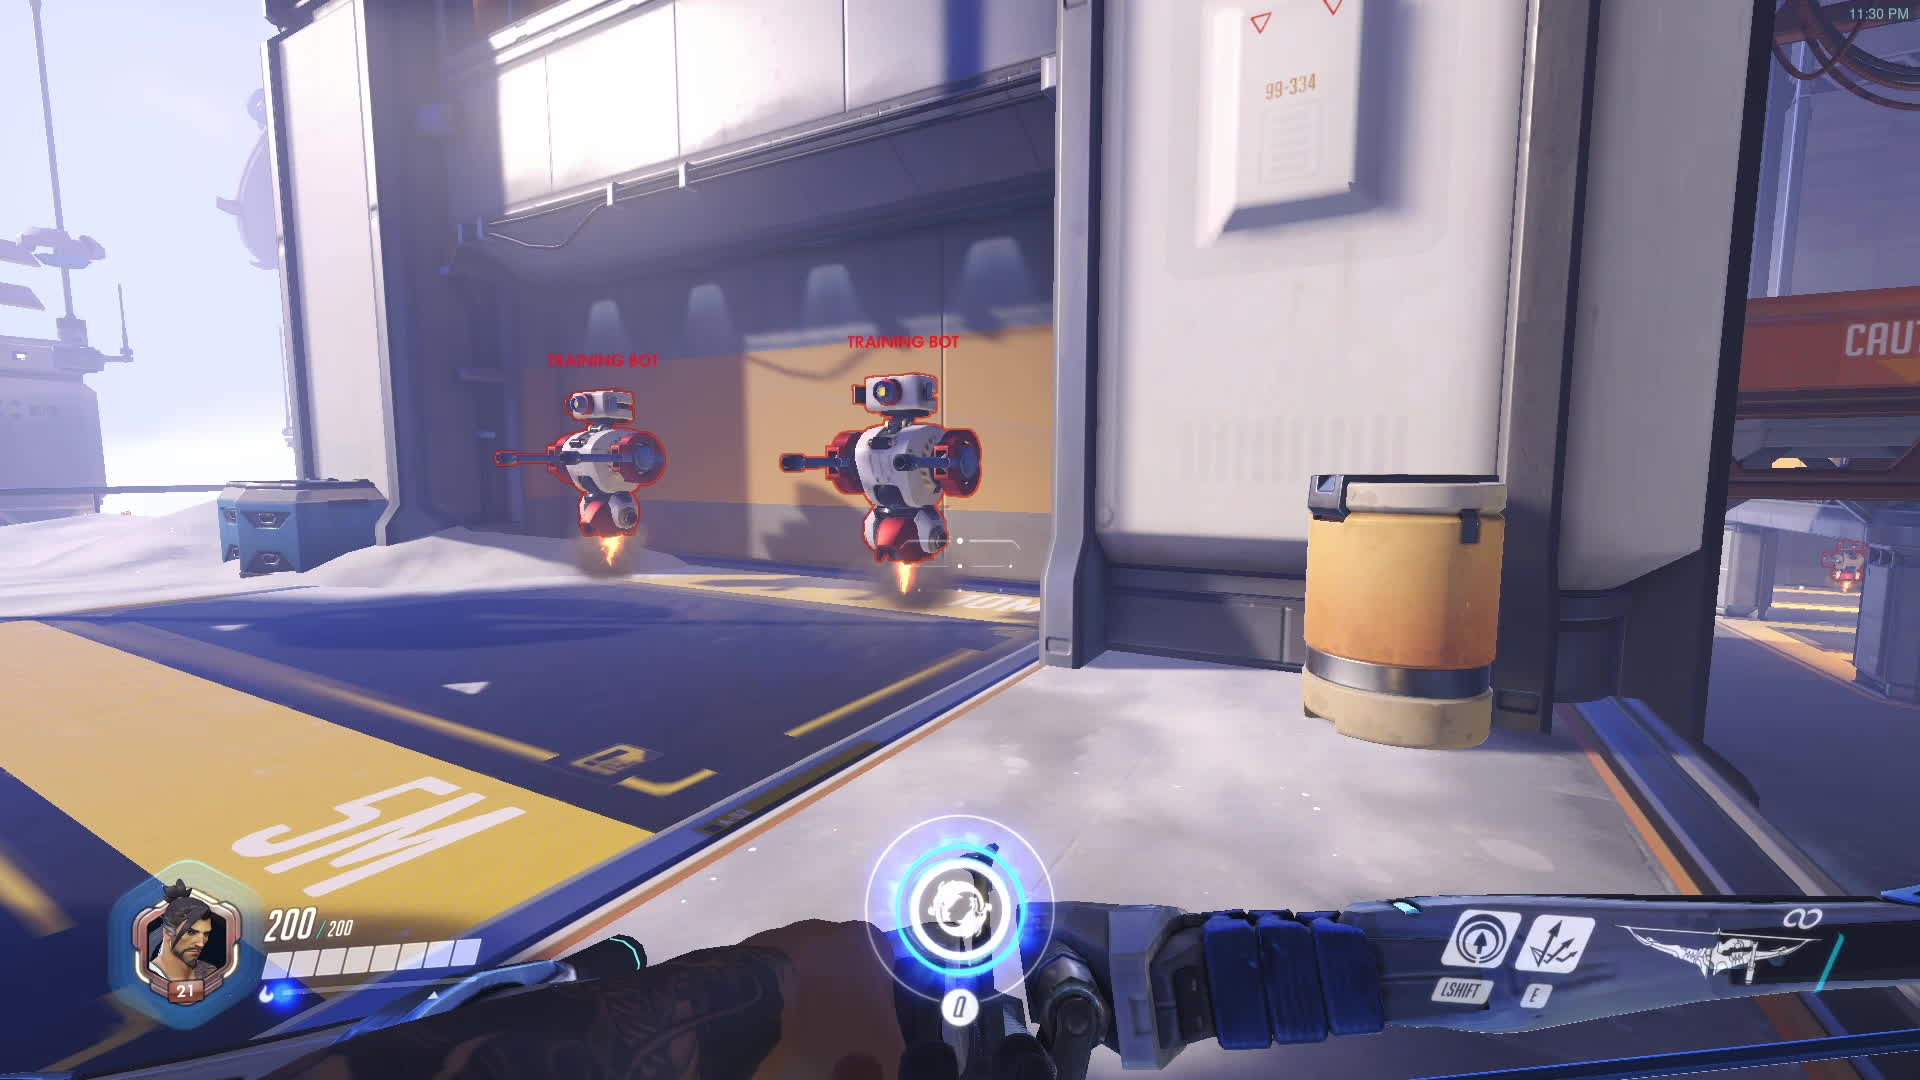 Competitiveoverwatch, new hanzo ult mechanic reverted on the ptr GIFs